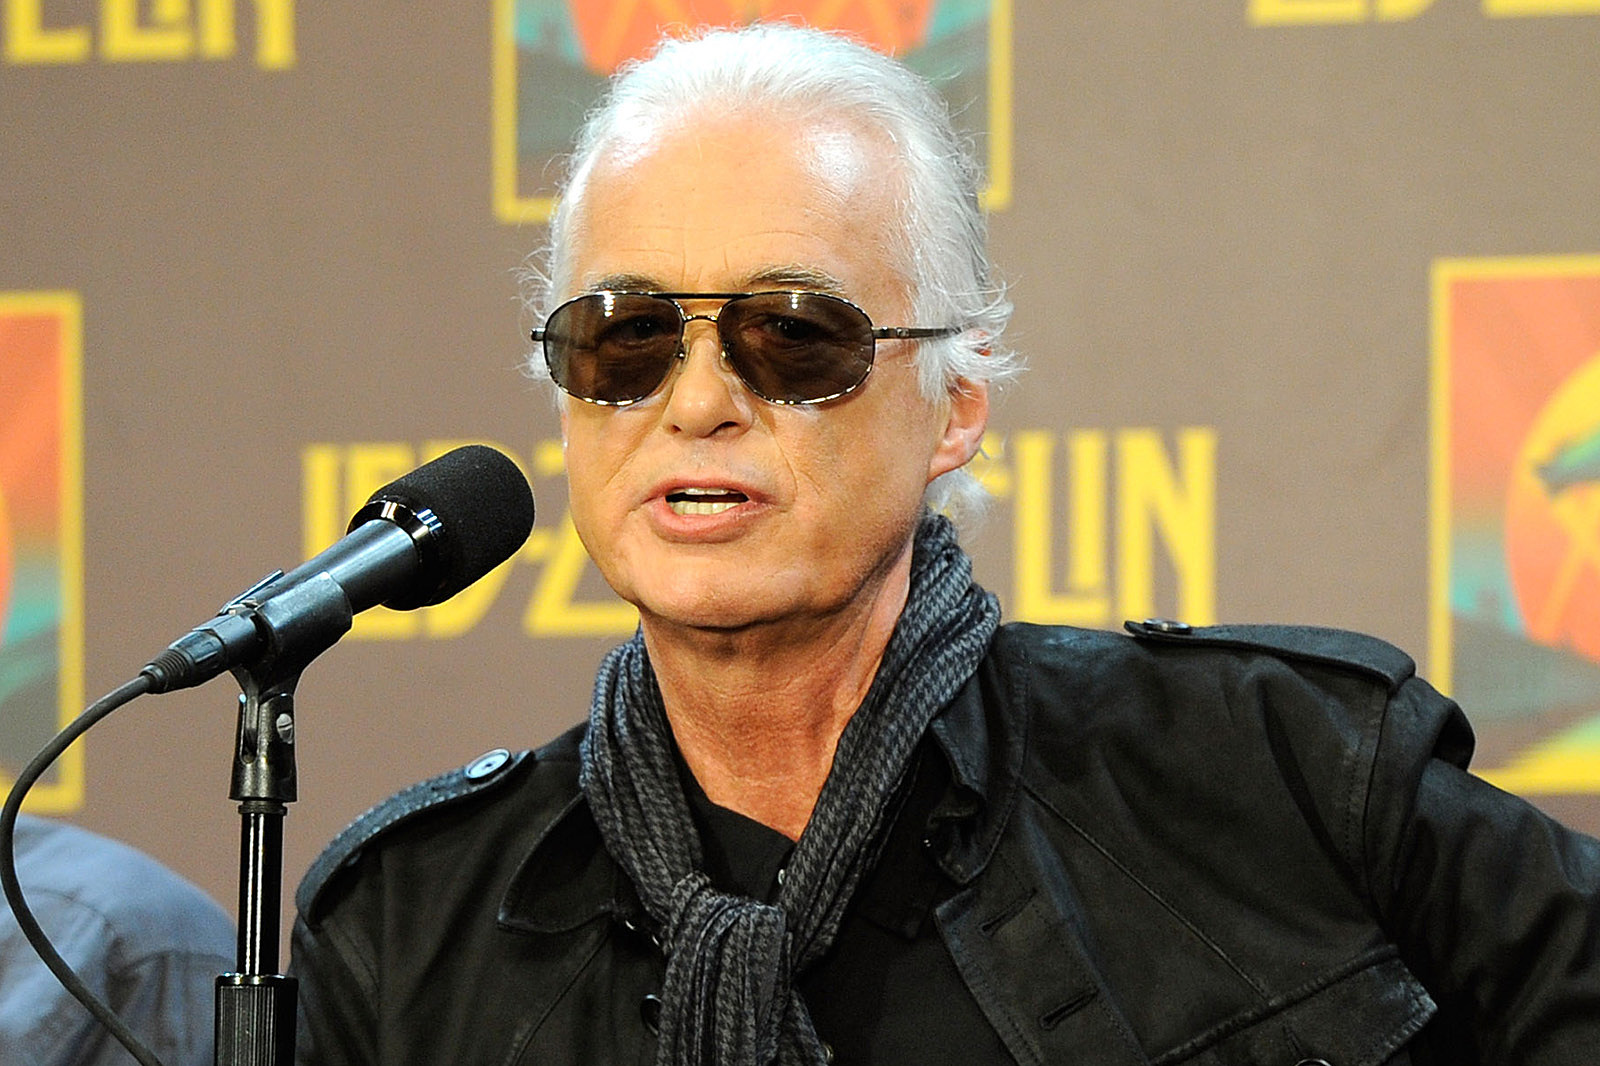 Why Jimmy Page Got 'Jittery' the Night After Led Zeppelin Reunion